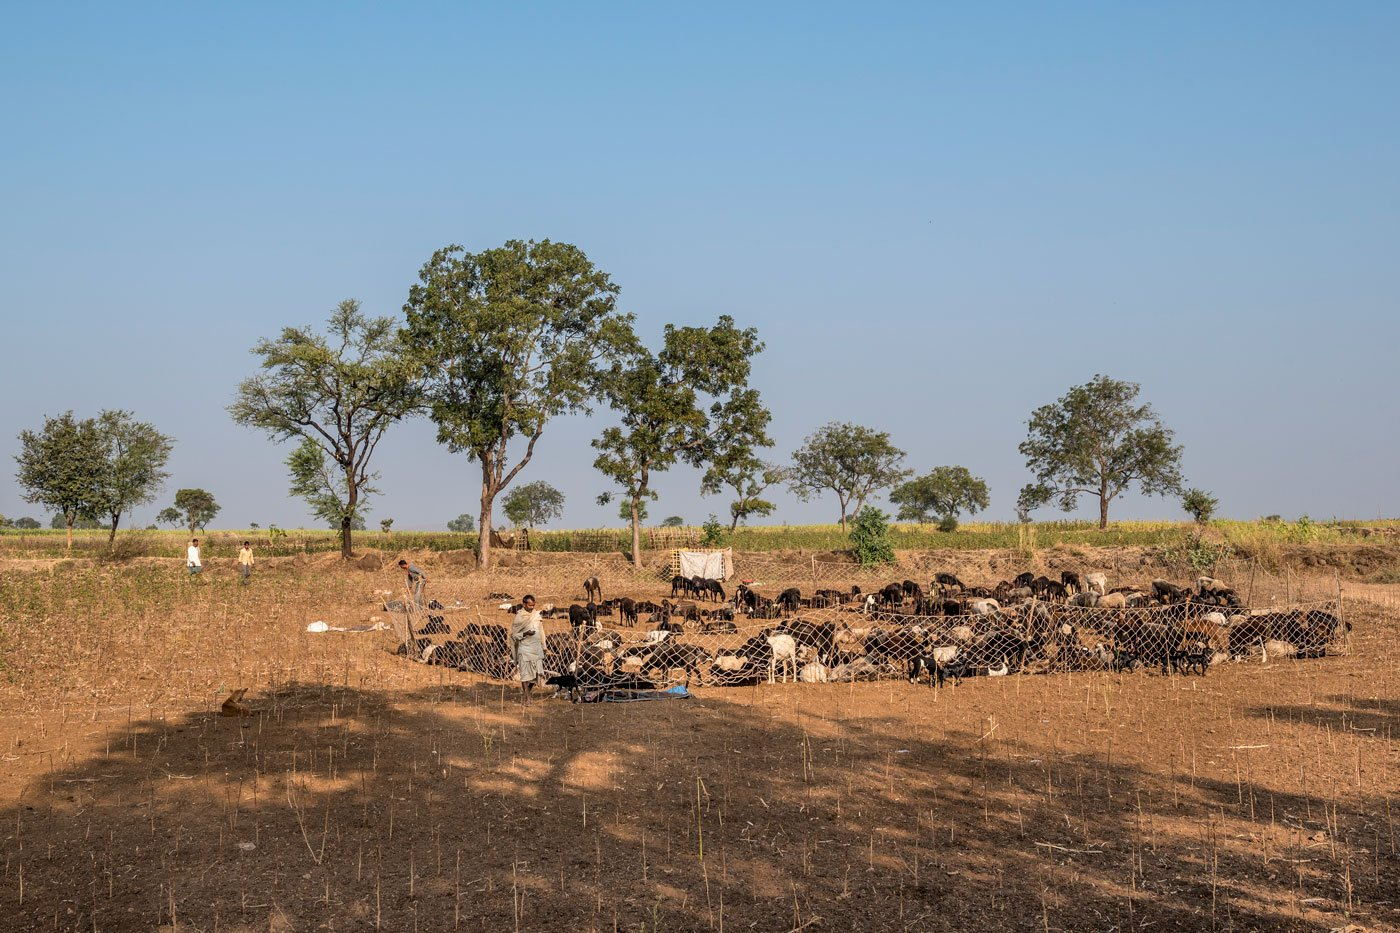 Often, two or more families divide the responsibilities of looking after their herds. They live as an extended family and migrate together after Diwali (in October-November) and return to their villages by spring (March-April).